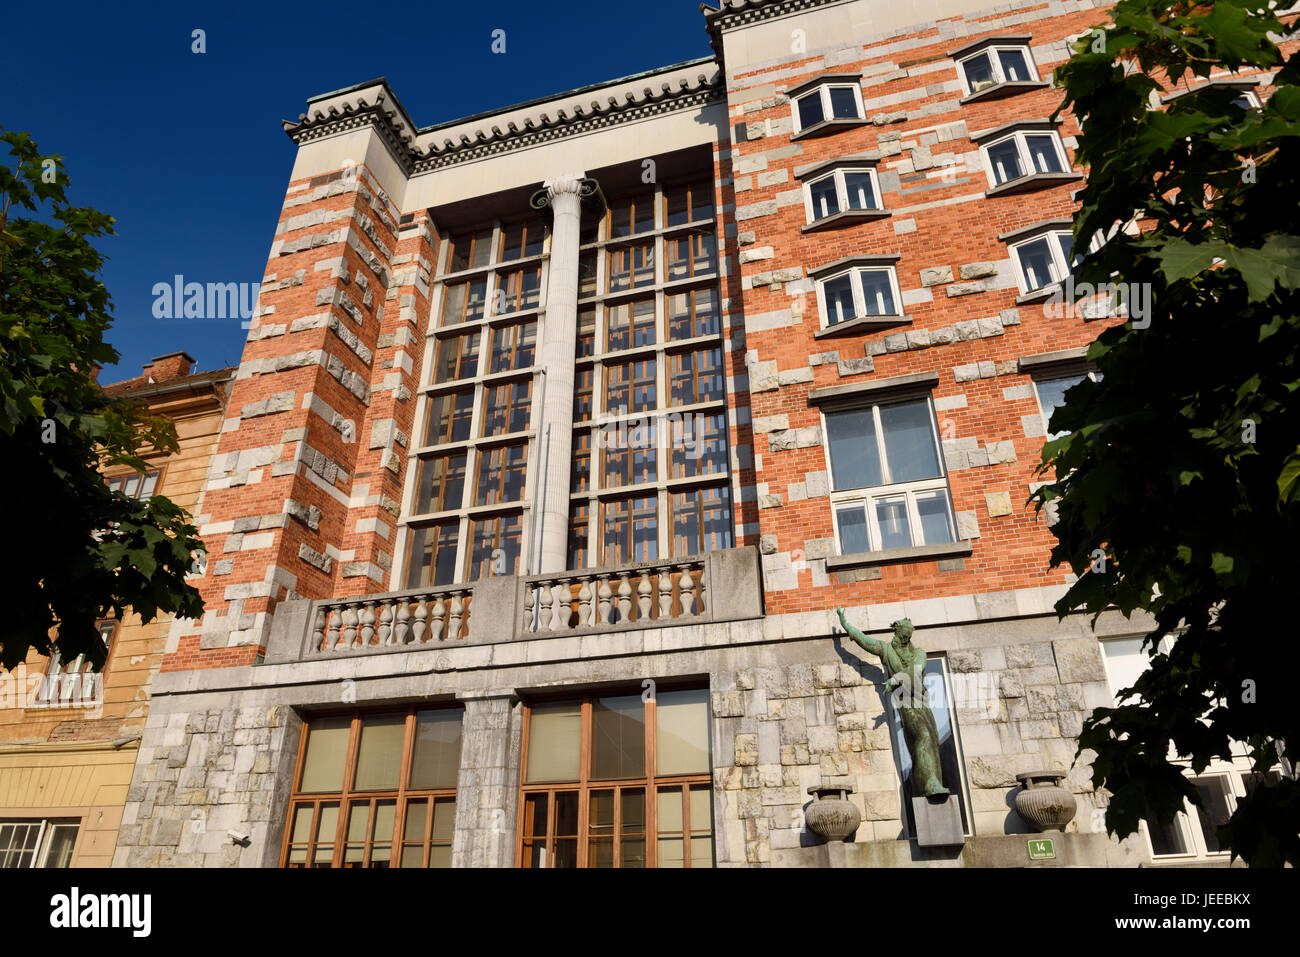 National and University Library of Slovenia in Ljubljana by architect Joze Plecnik with sculpture of Moses by Dolinar - Stock Image